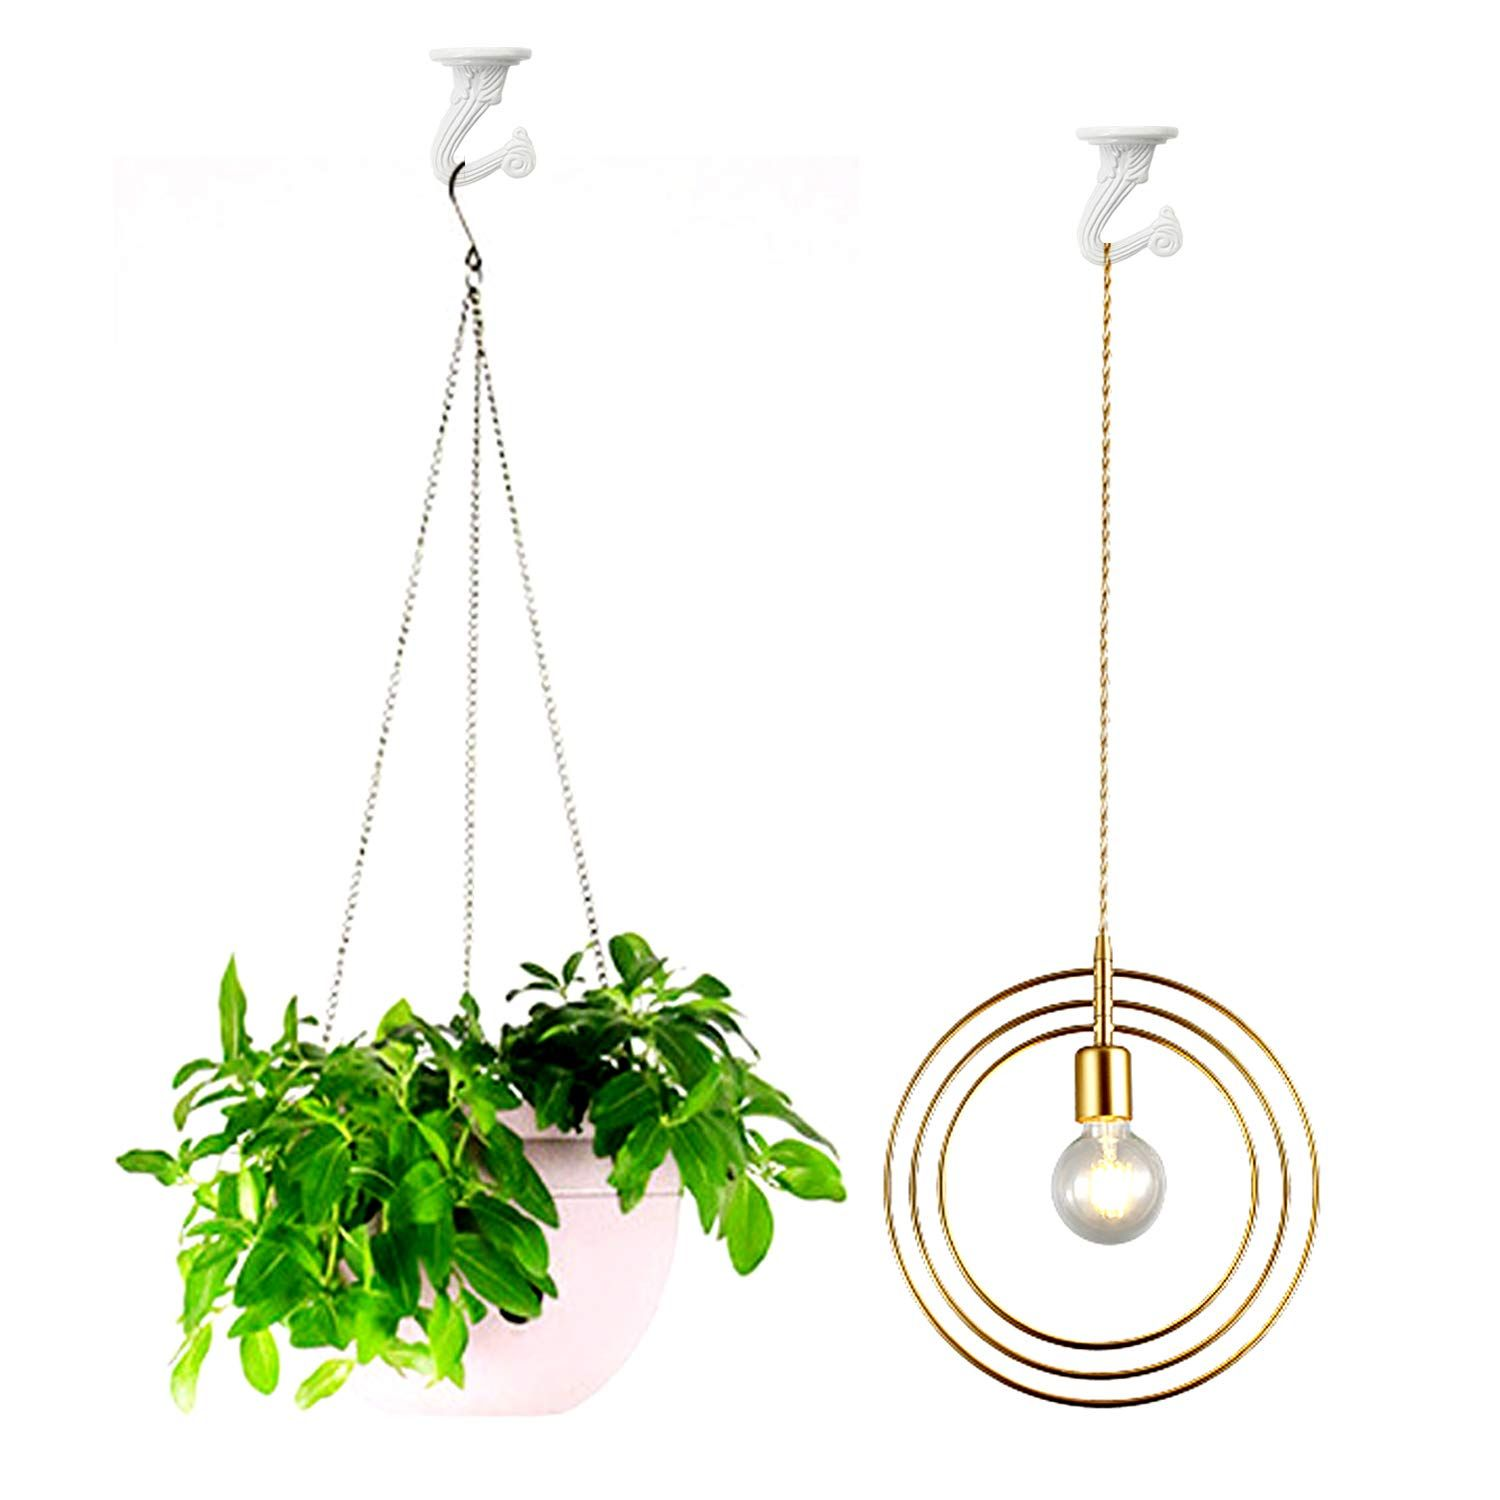 10 Sets Ceiling Hooks Heavy Duty Swag Hook With Hardware For Hanging Plants Ceiling Installation Cavity Wal Hanging Plants Ceiling Installation Ceiling Hooks